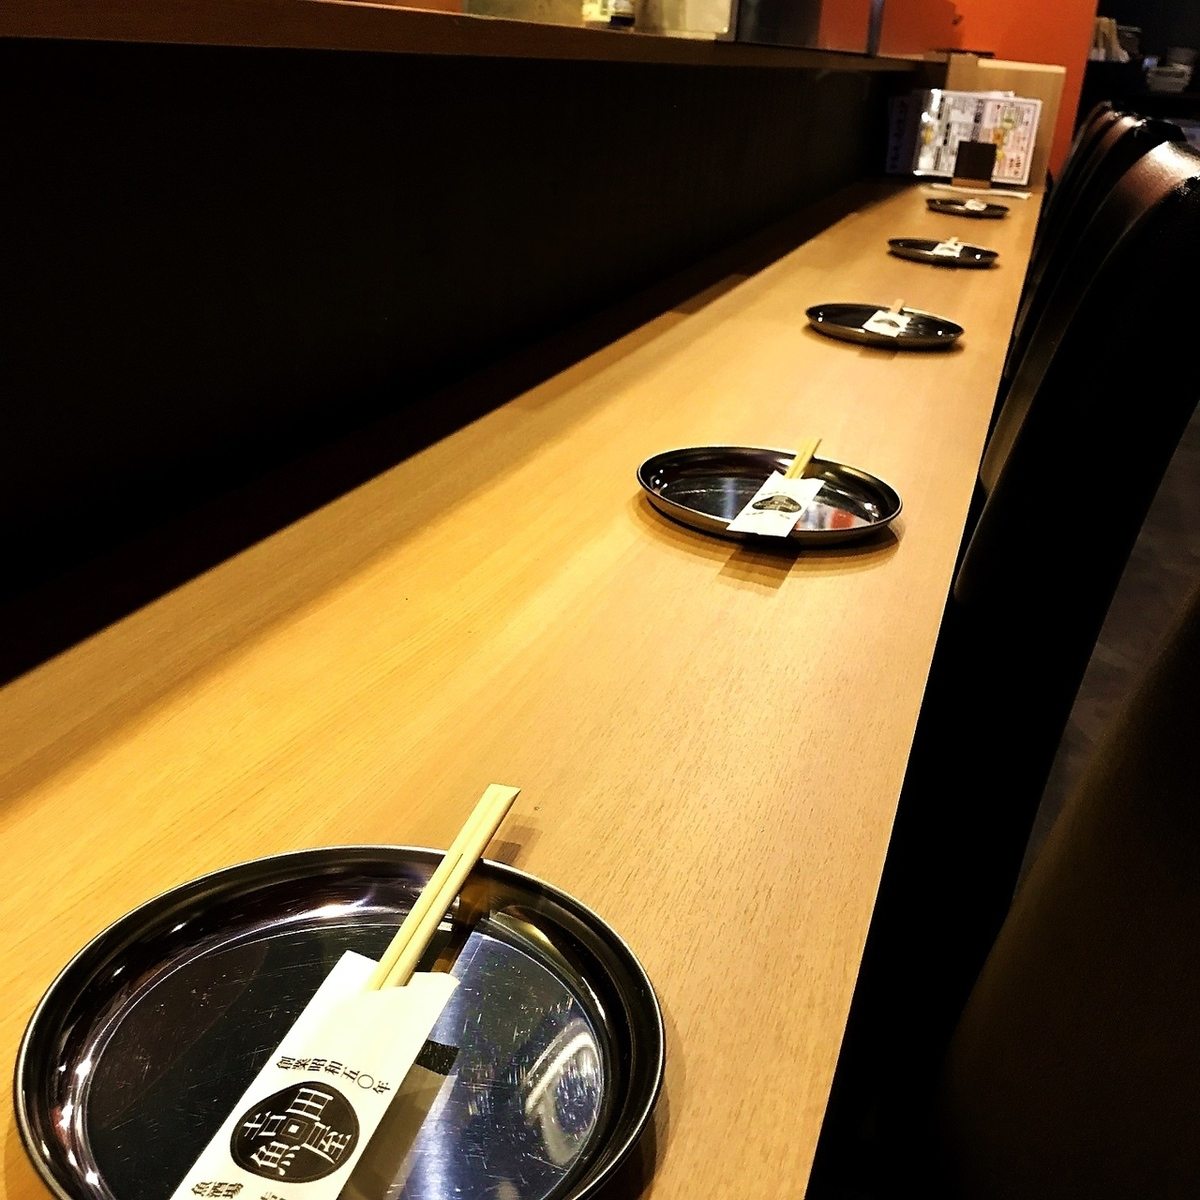 Recommended for open kitchen counter seat ◎ 1 person